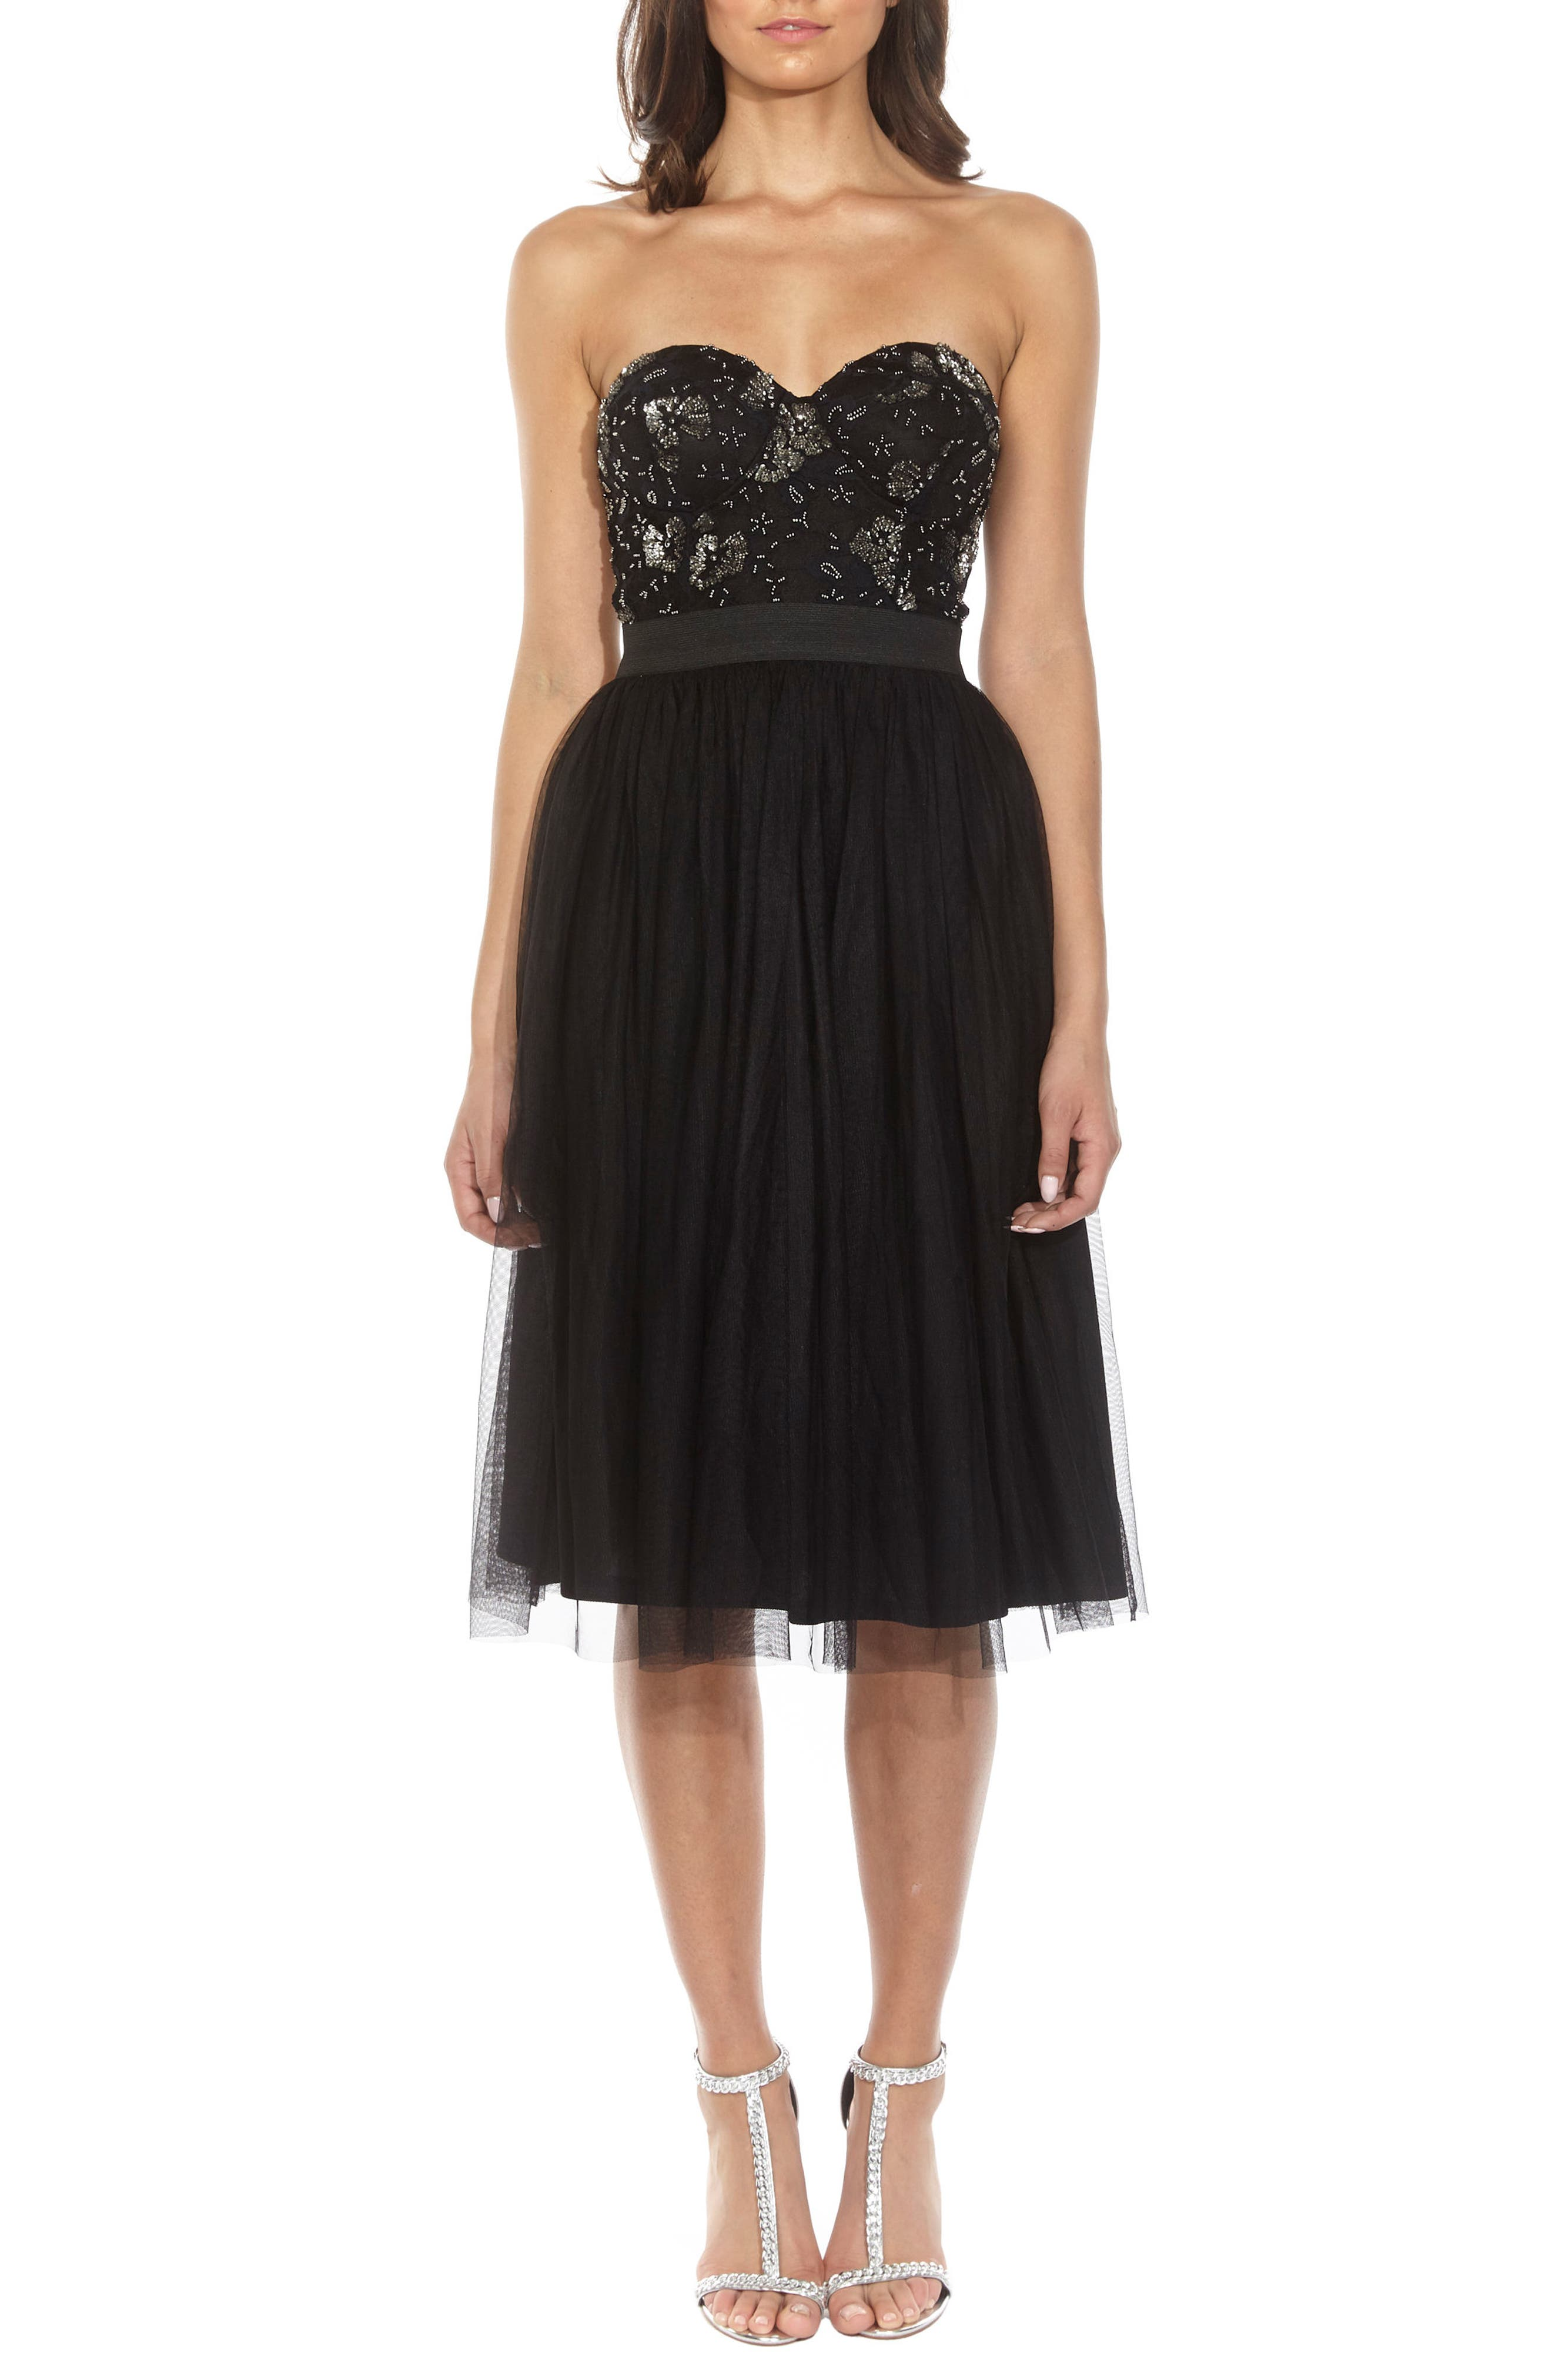 Main Image - Lace & Beads Mika Embellished Strapless Dress